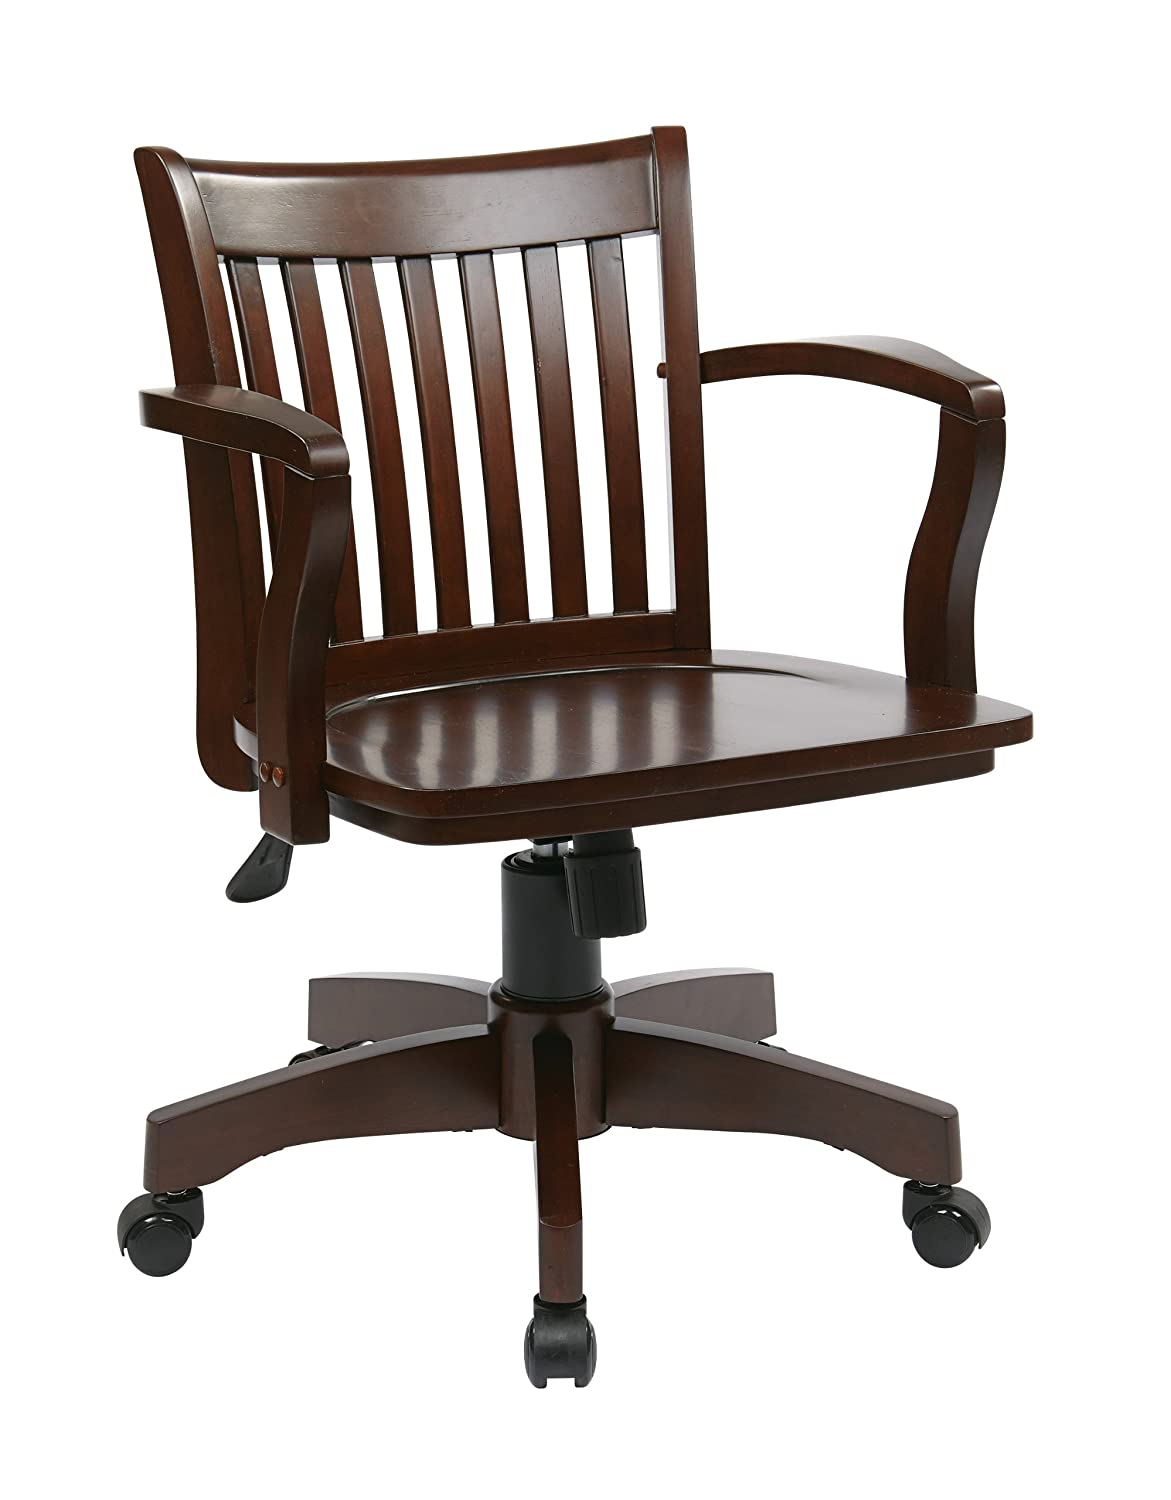 Amazon.com: Office Star Deluxe Wood Bankers Desk Chair With Wood Seat,  Fruit Wood: Kitchen U0026 Dining